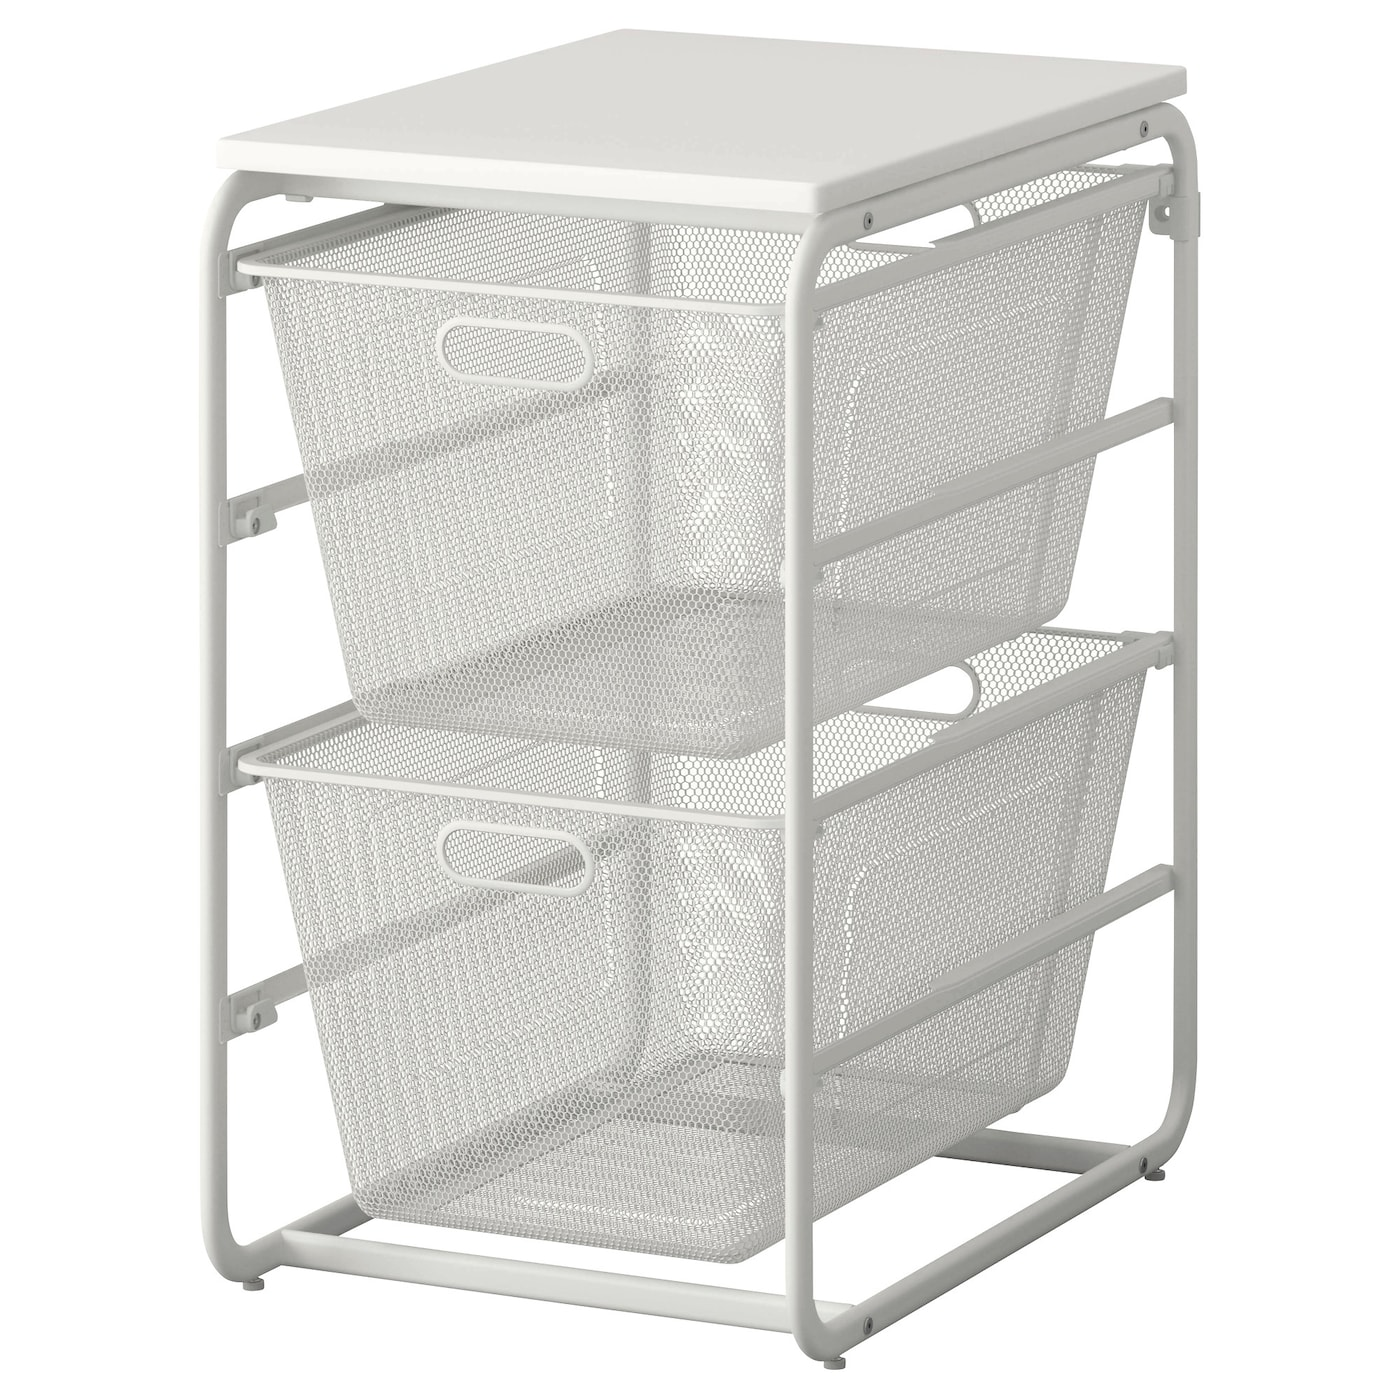 algot frame 2 mesh baskets top shelf white 41x60x75 cm ikea. Black Bedroom Furniture Sets. Home Design Ideas